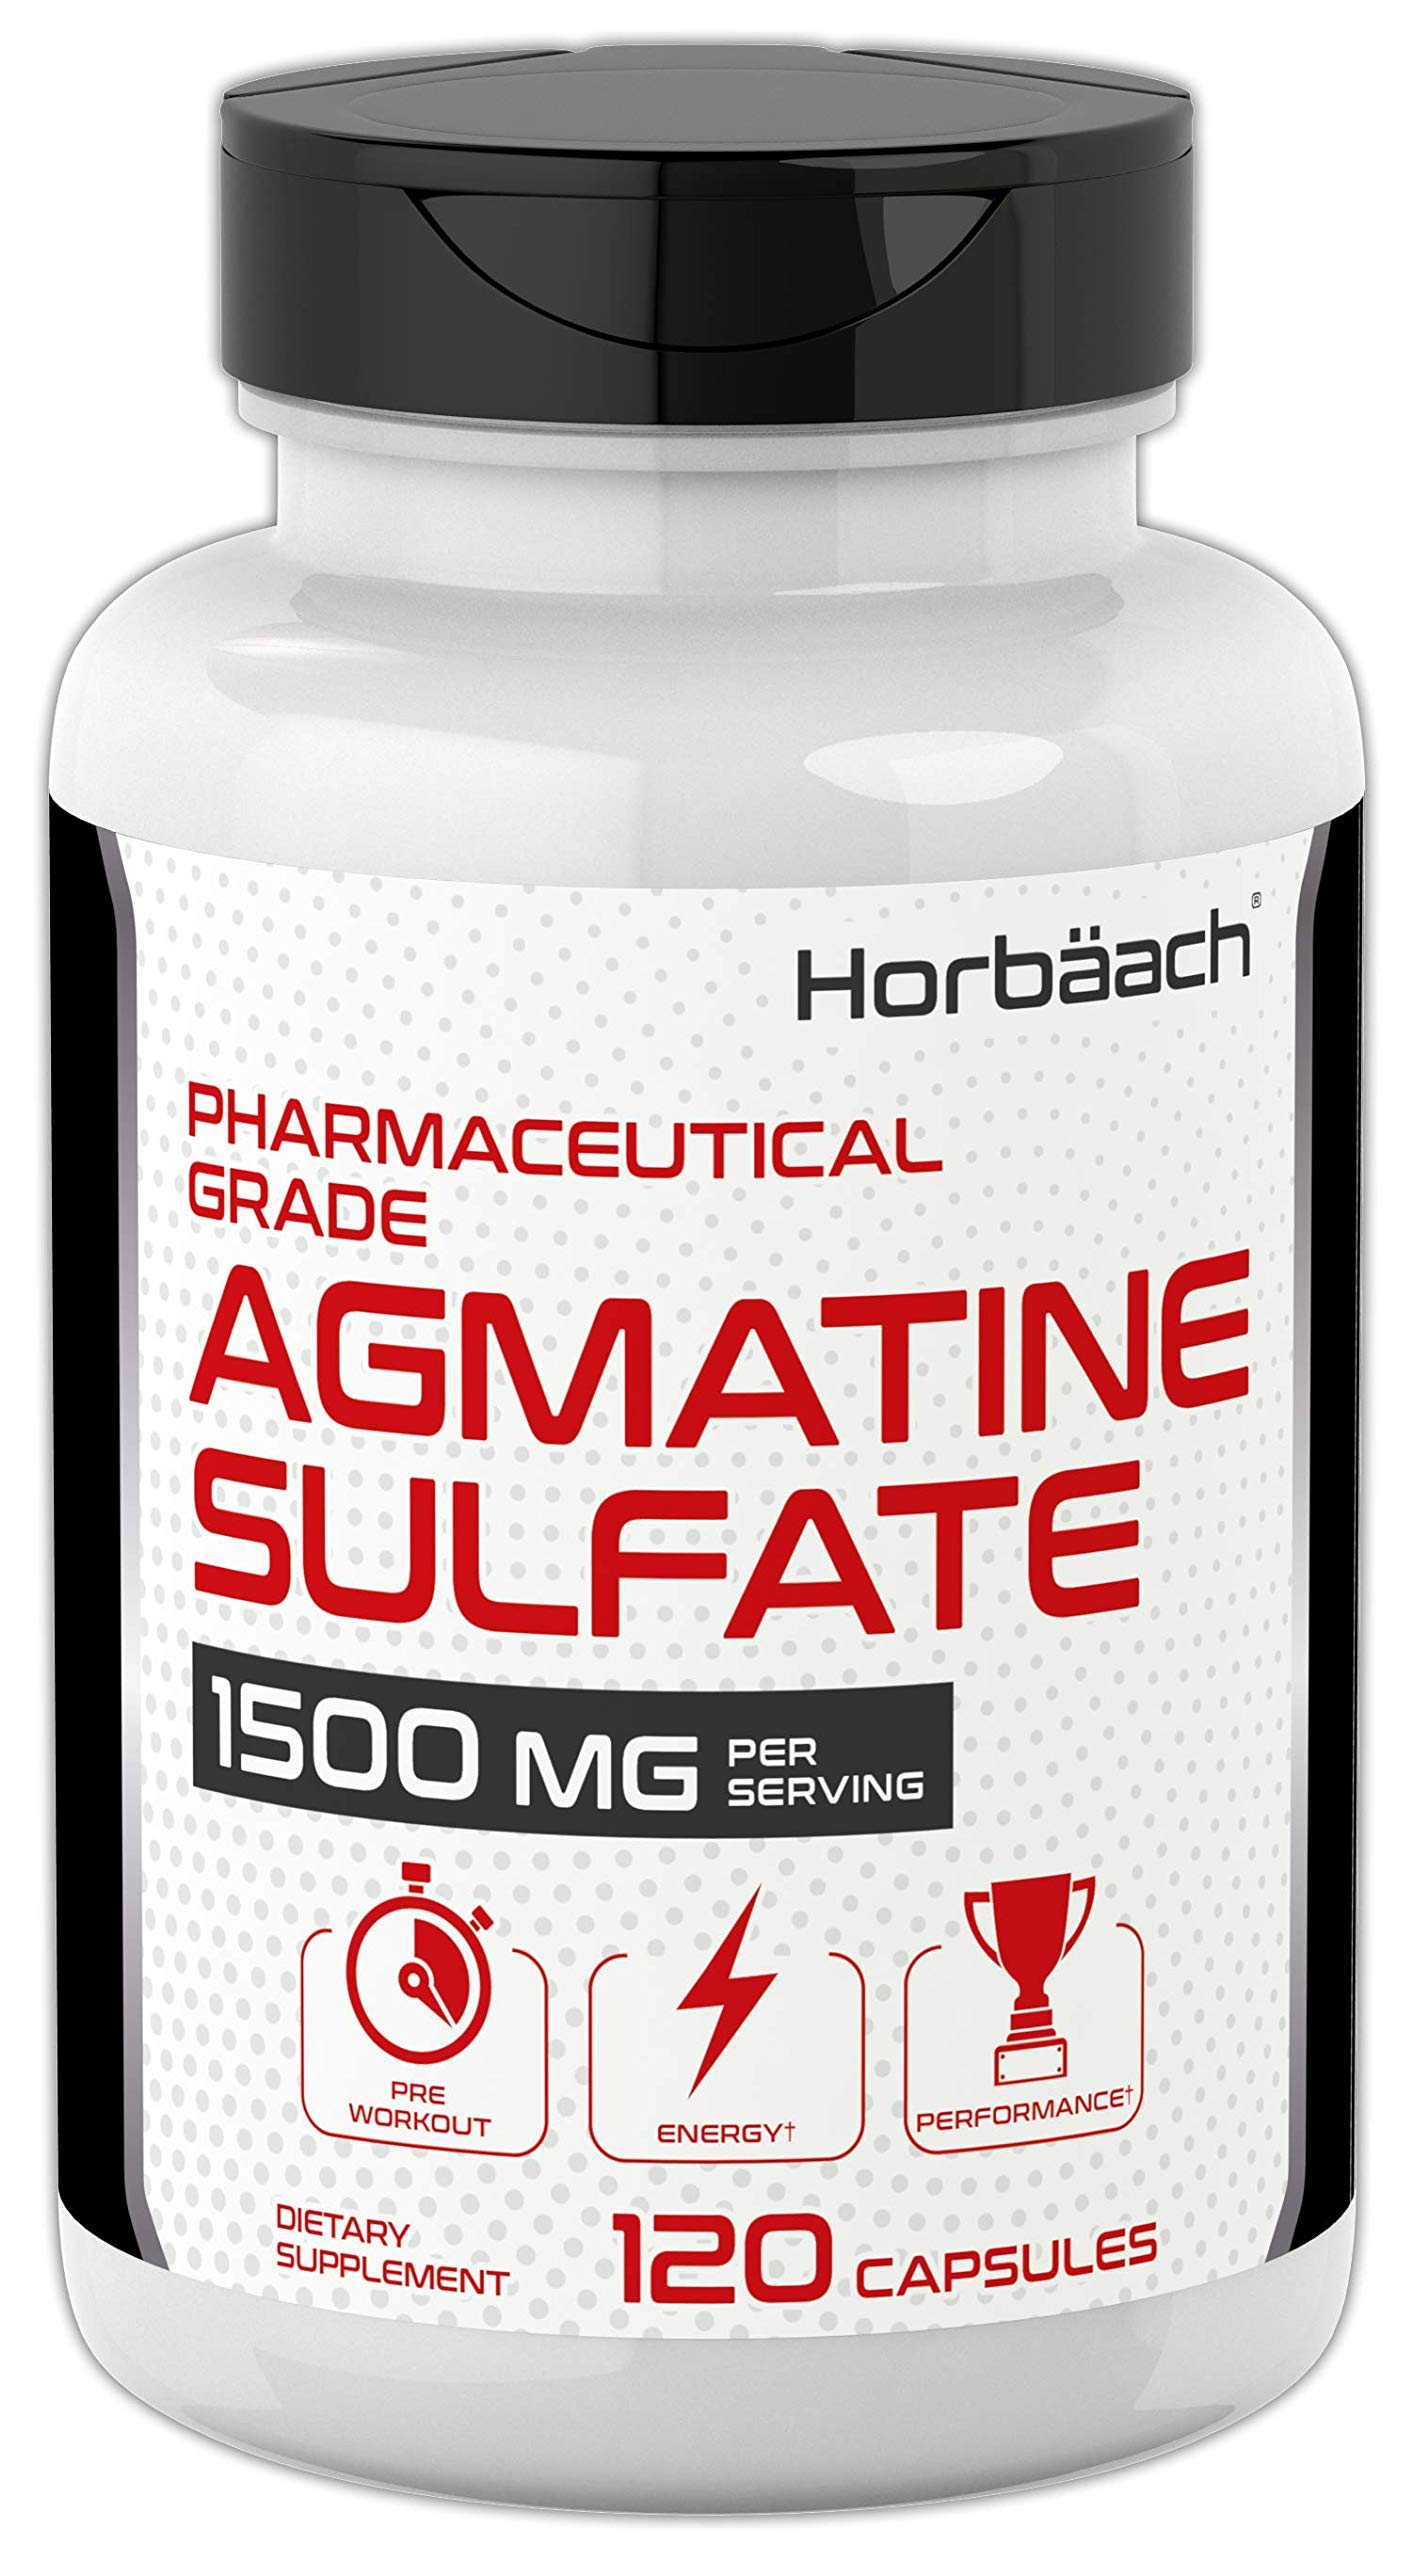 Agmatine Sulfate Capsules 1500mg   120 Pills   Pharmaceutical Grade   Non-GMO, Gluten Free Supplement   by Horbaach